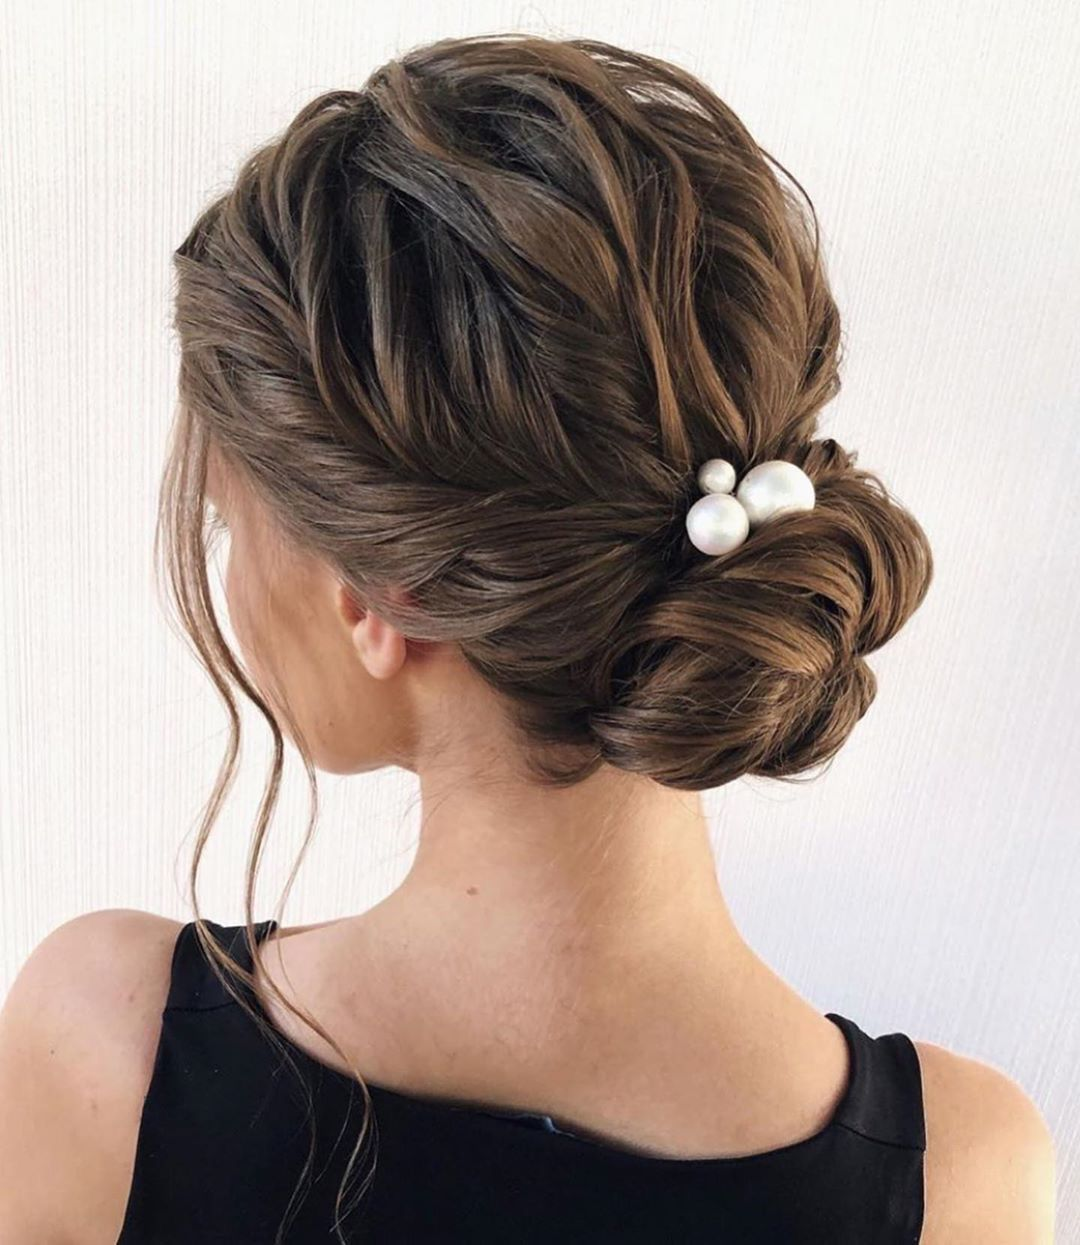 20 Wedding Hair Styling Best Ideas For Long Hair Show You The Perfect Self Wedding Hair Ideas In 2020 Long Hair Styles Hair Styles Wedding Hairstyles